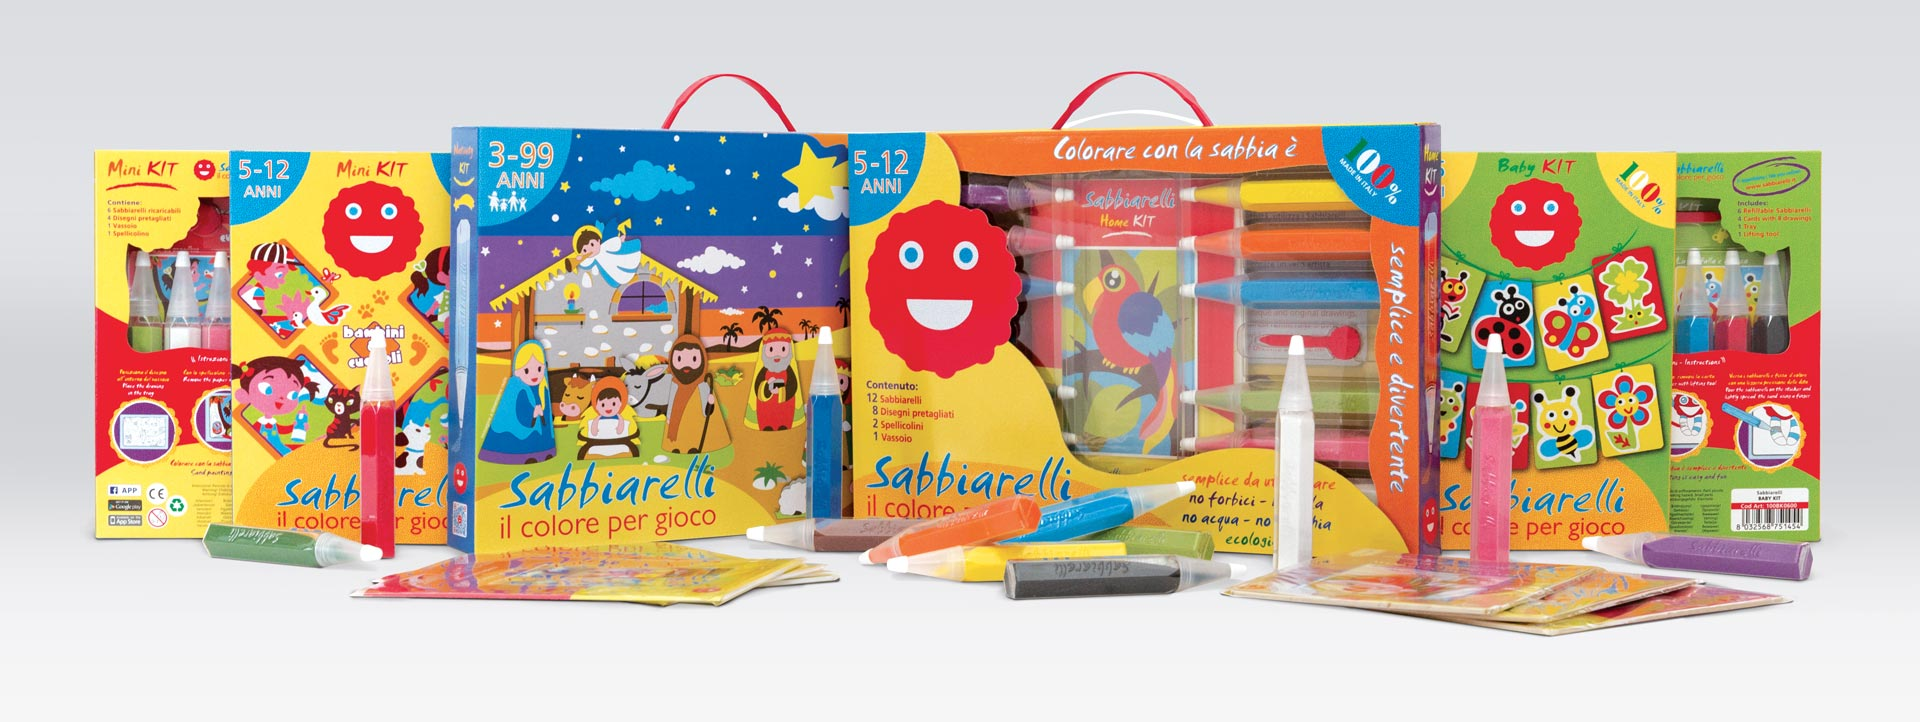 Sabbiarelli - Packaging